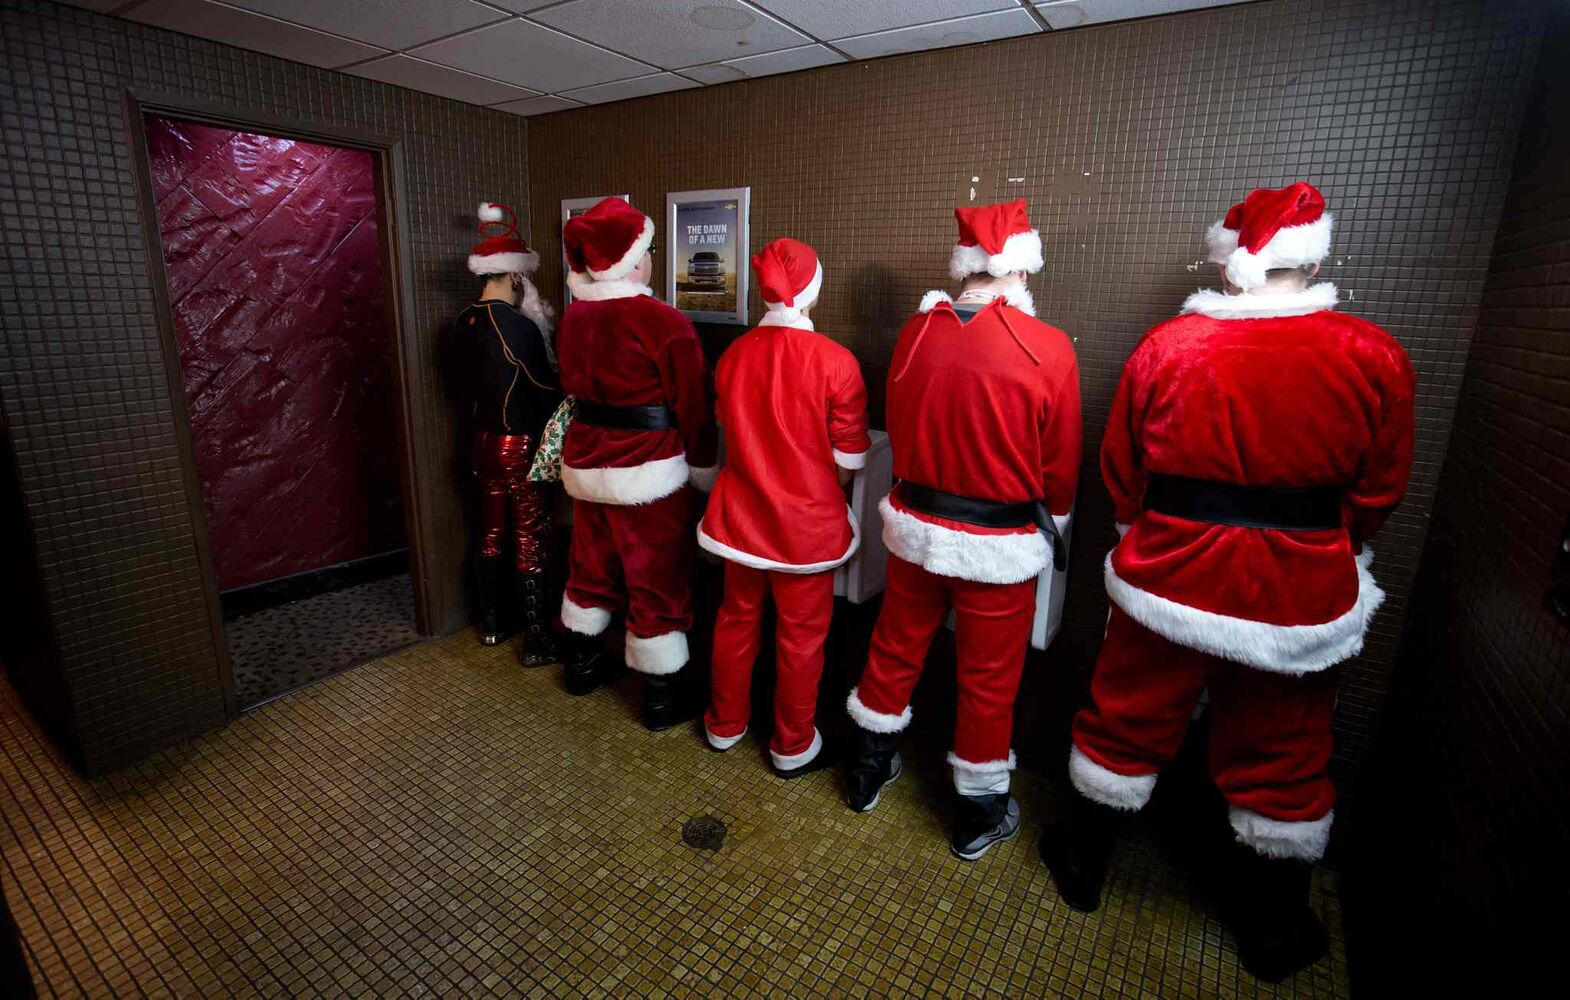 Men dressed as Santa Claus use the washroom at a bar during a Santacon event in Vancouver, B.C. on Saturday. (DARRYL DYCK / THE CANADIAN PRESS)